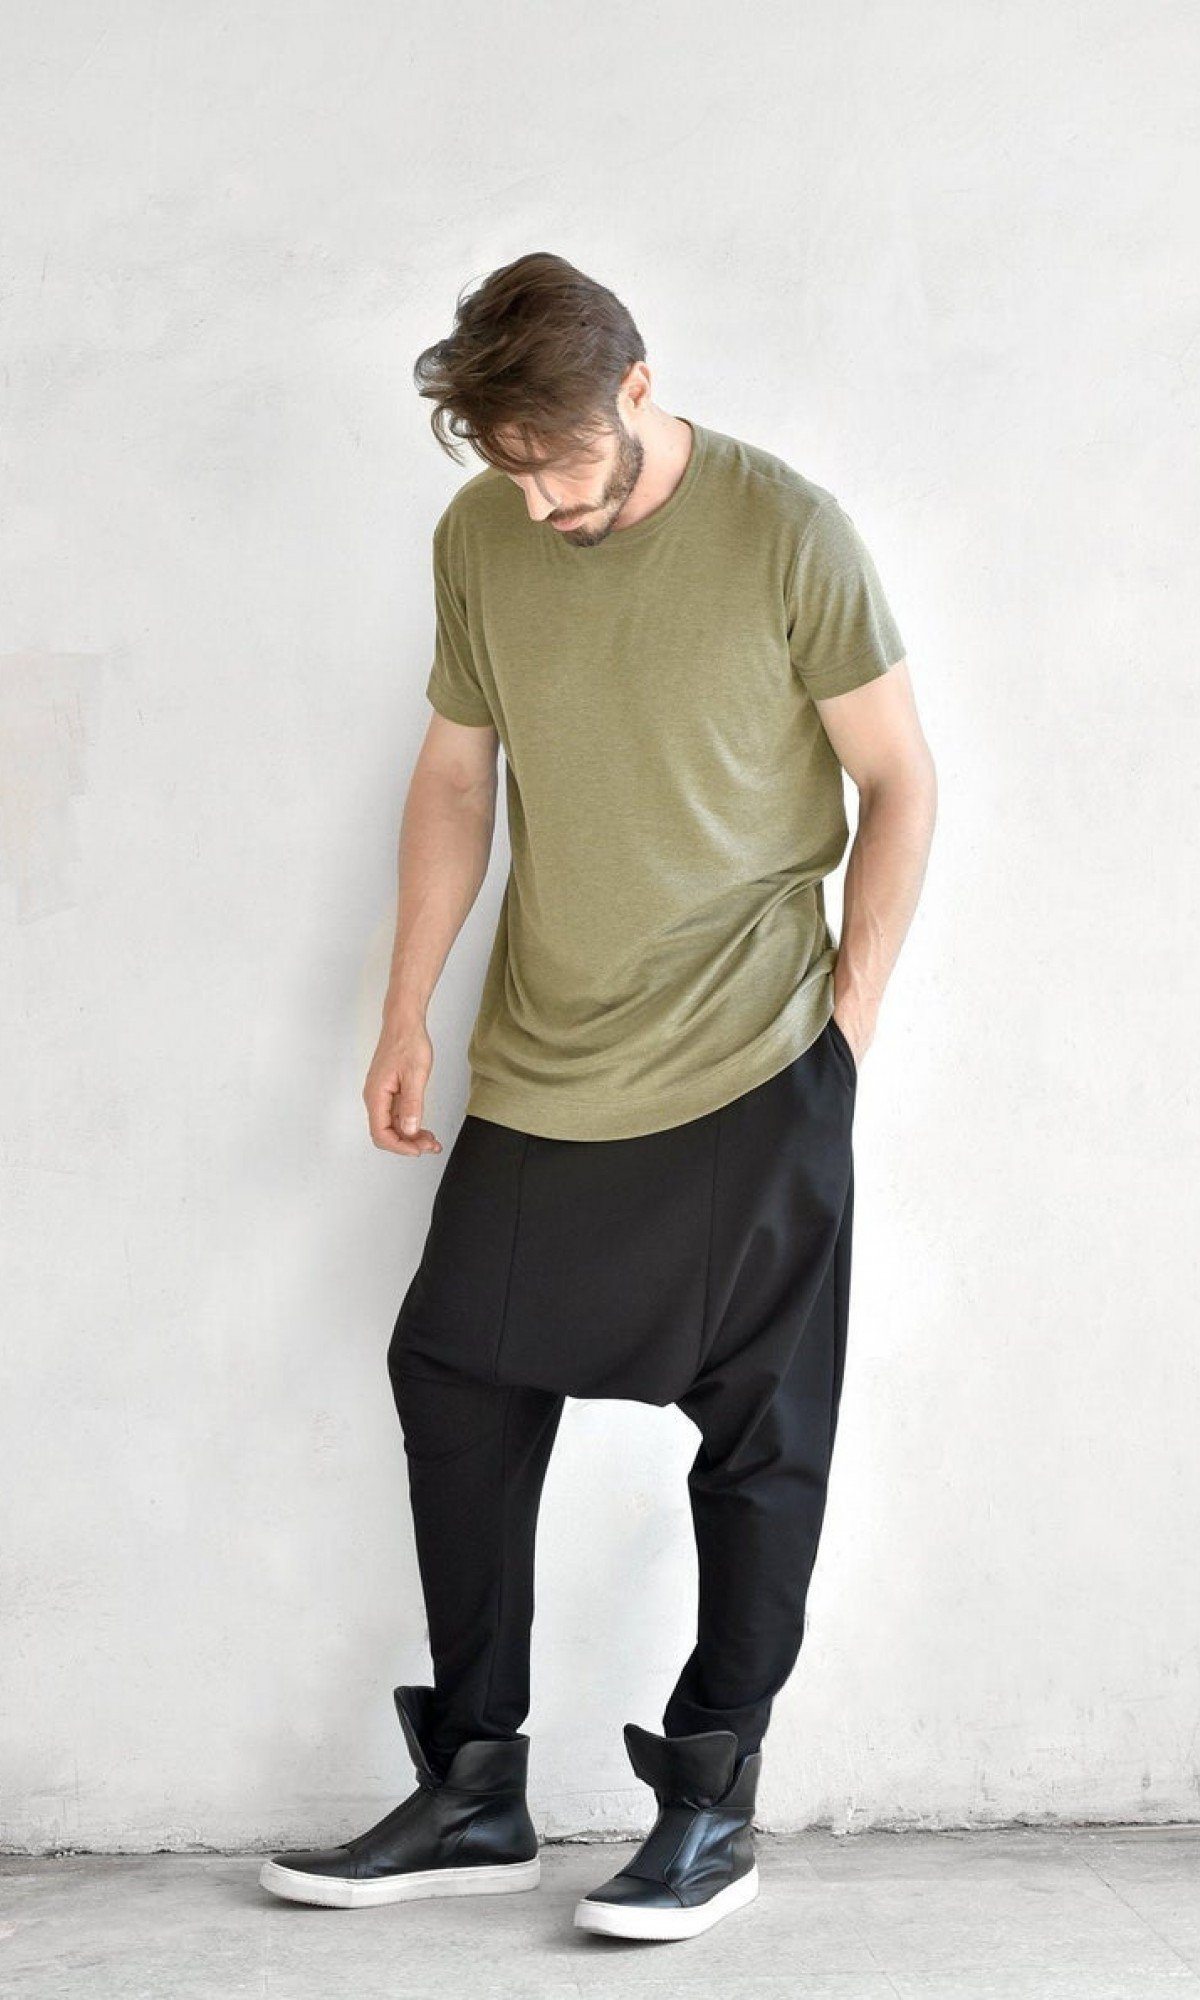 Elegant Drop Crotch Casual Pants A05062M